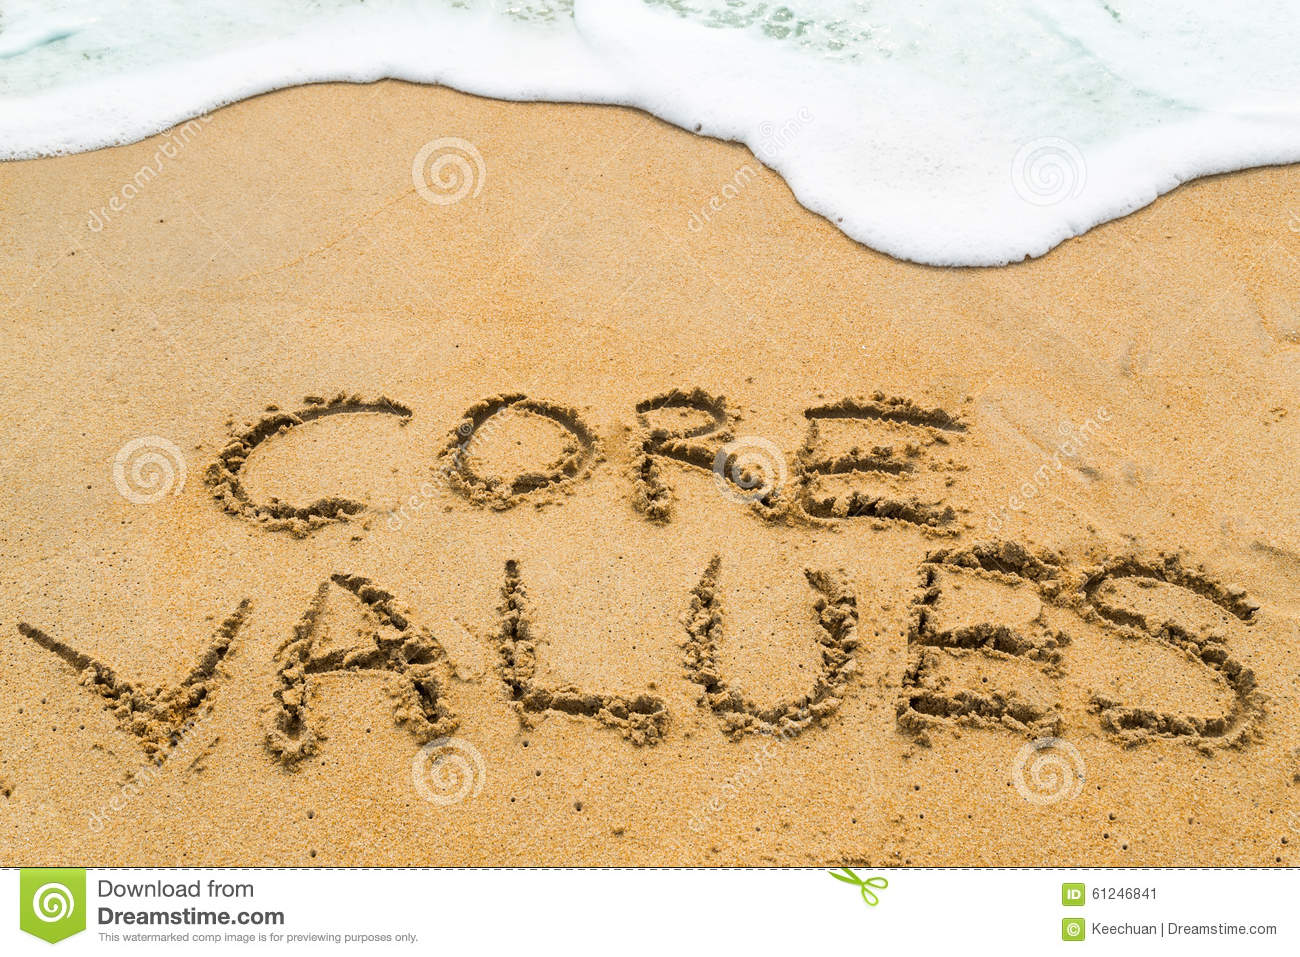 CORE VALUES inscription written on sandy beach with wave approac